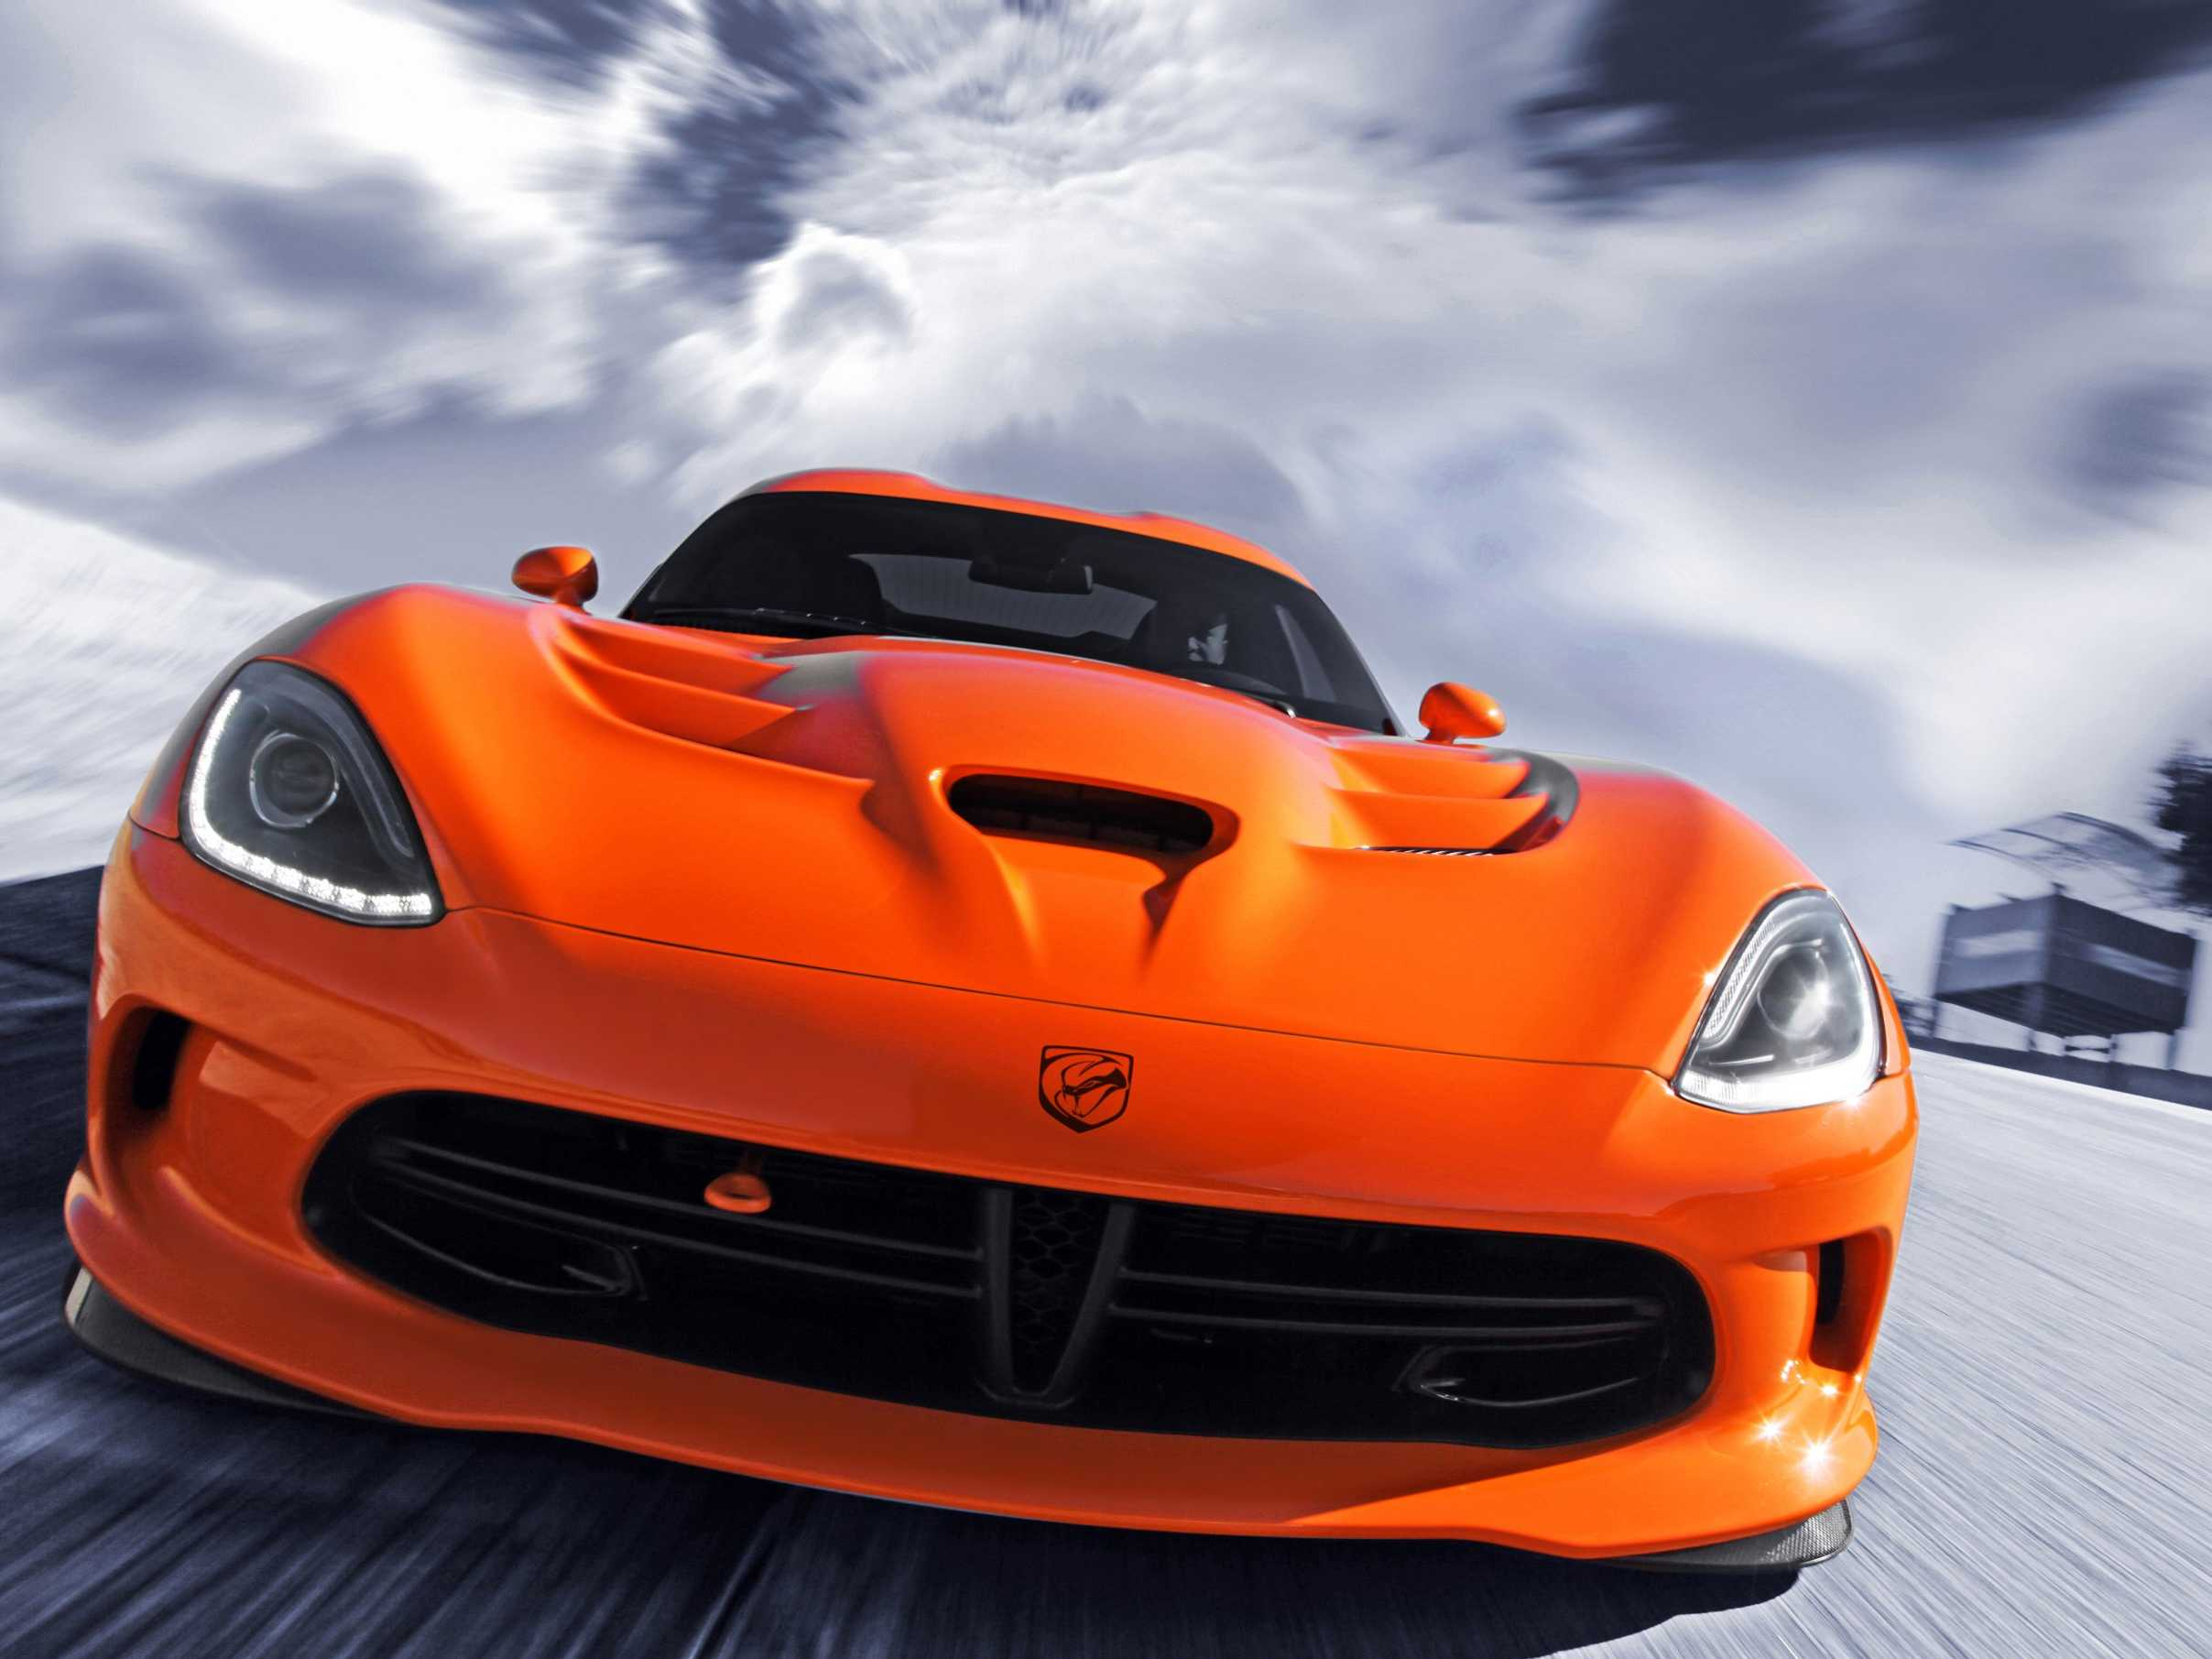 2014 SRT Viper TA Car Wallpaper